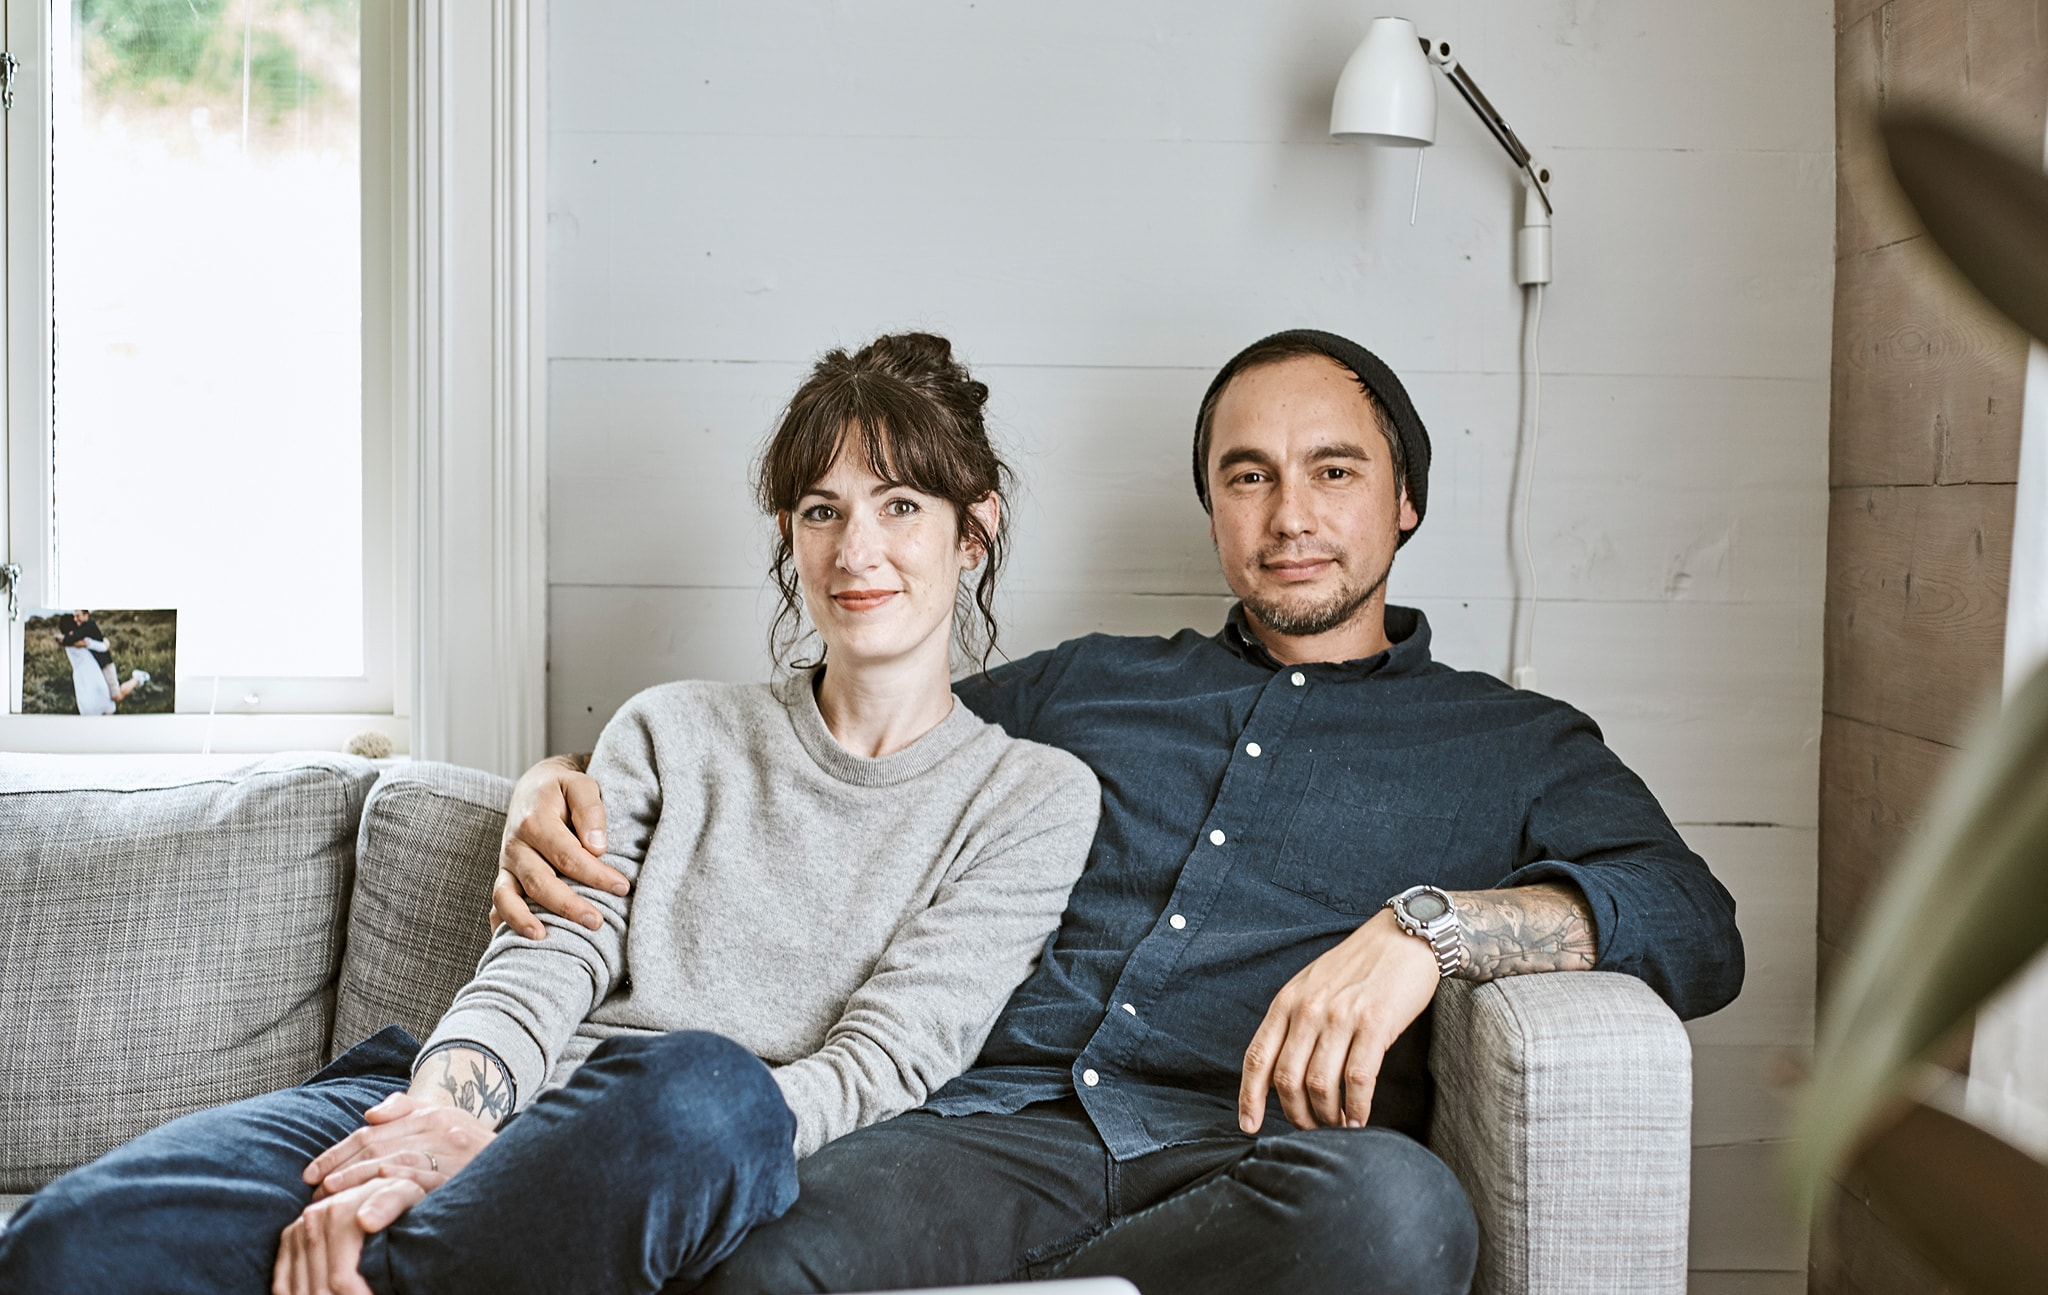 Rena and Sam sitting on the sofa together in their Norwegian farmhouse.